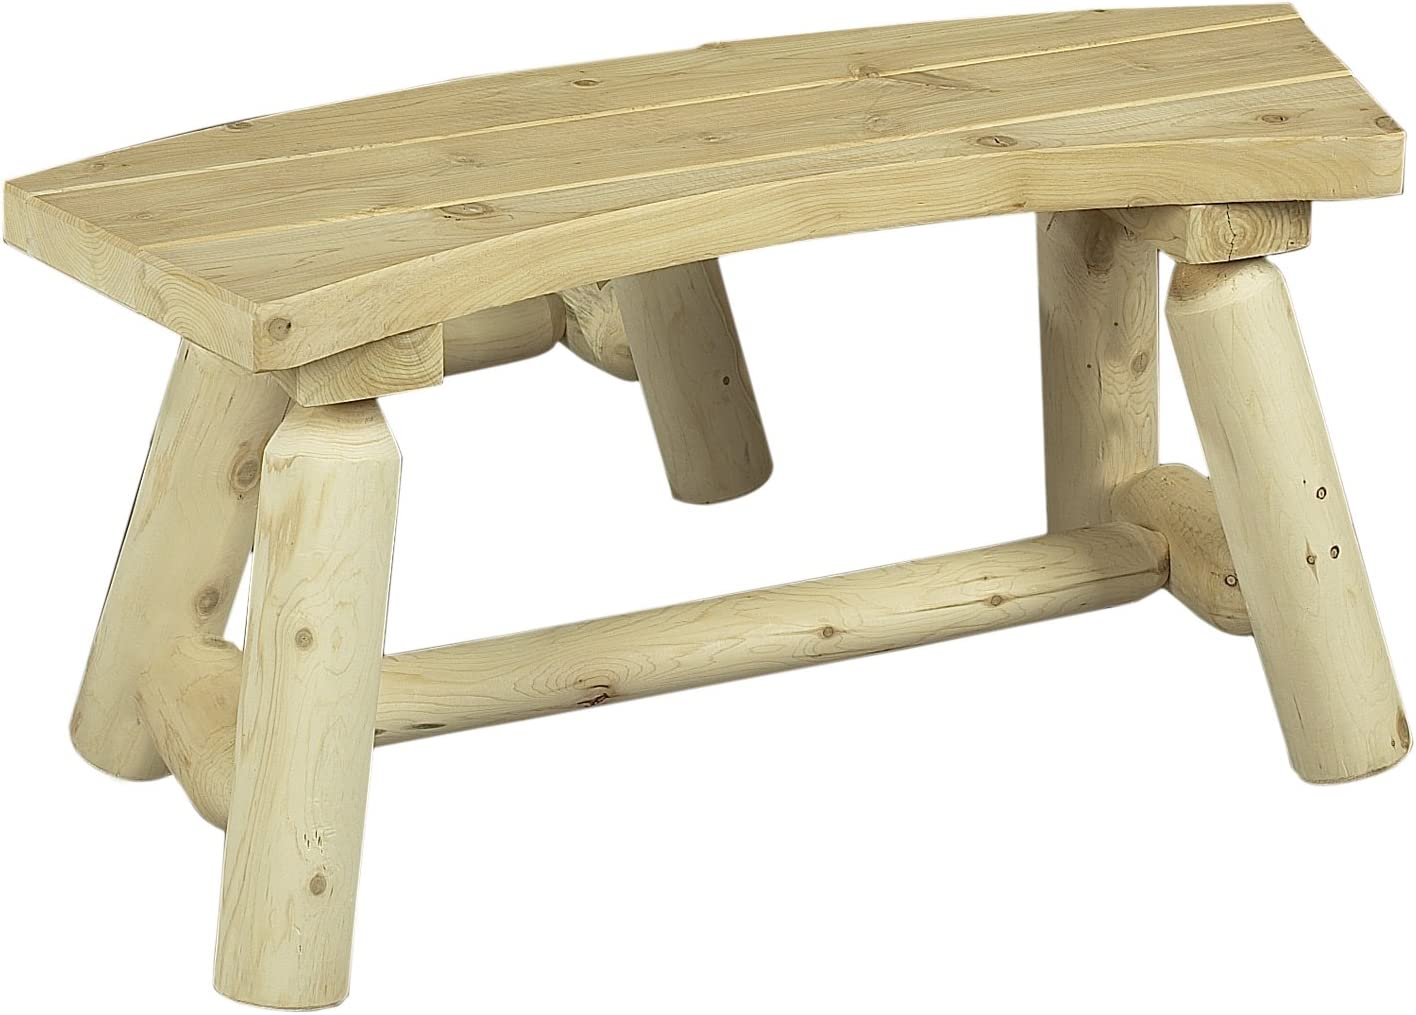 Cedarlooks 030020 Log Round Bench